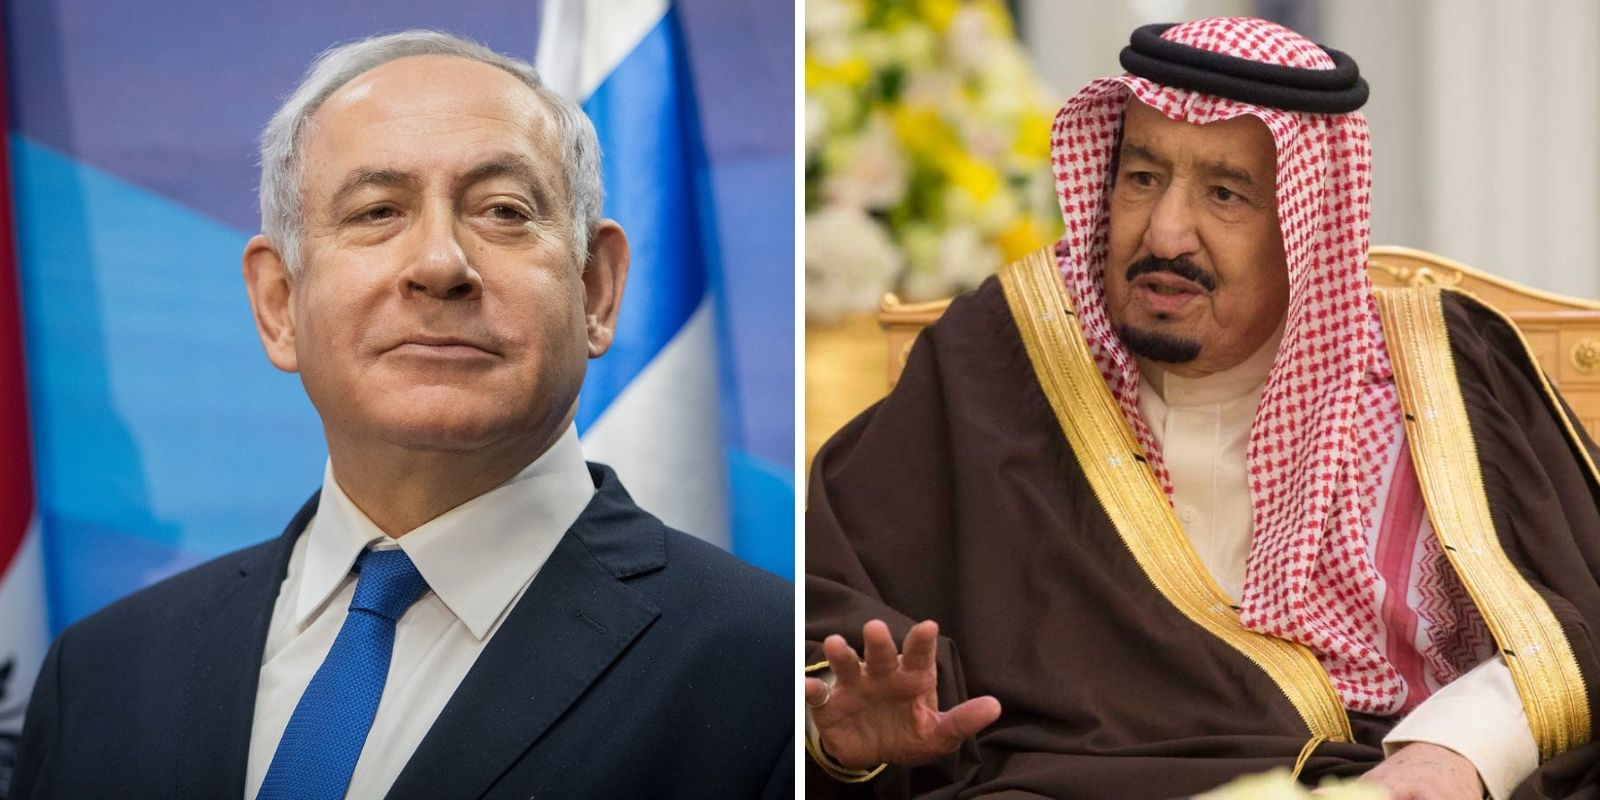 POLL: Majority of Saudis favour normalizing ties with Israel